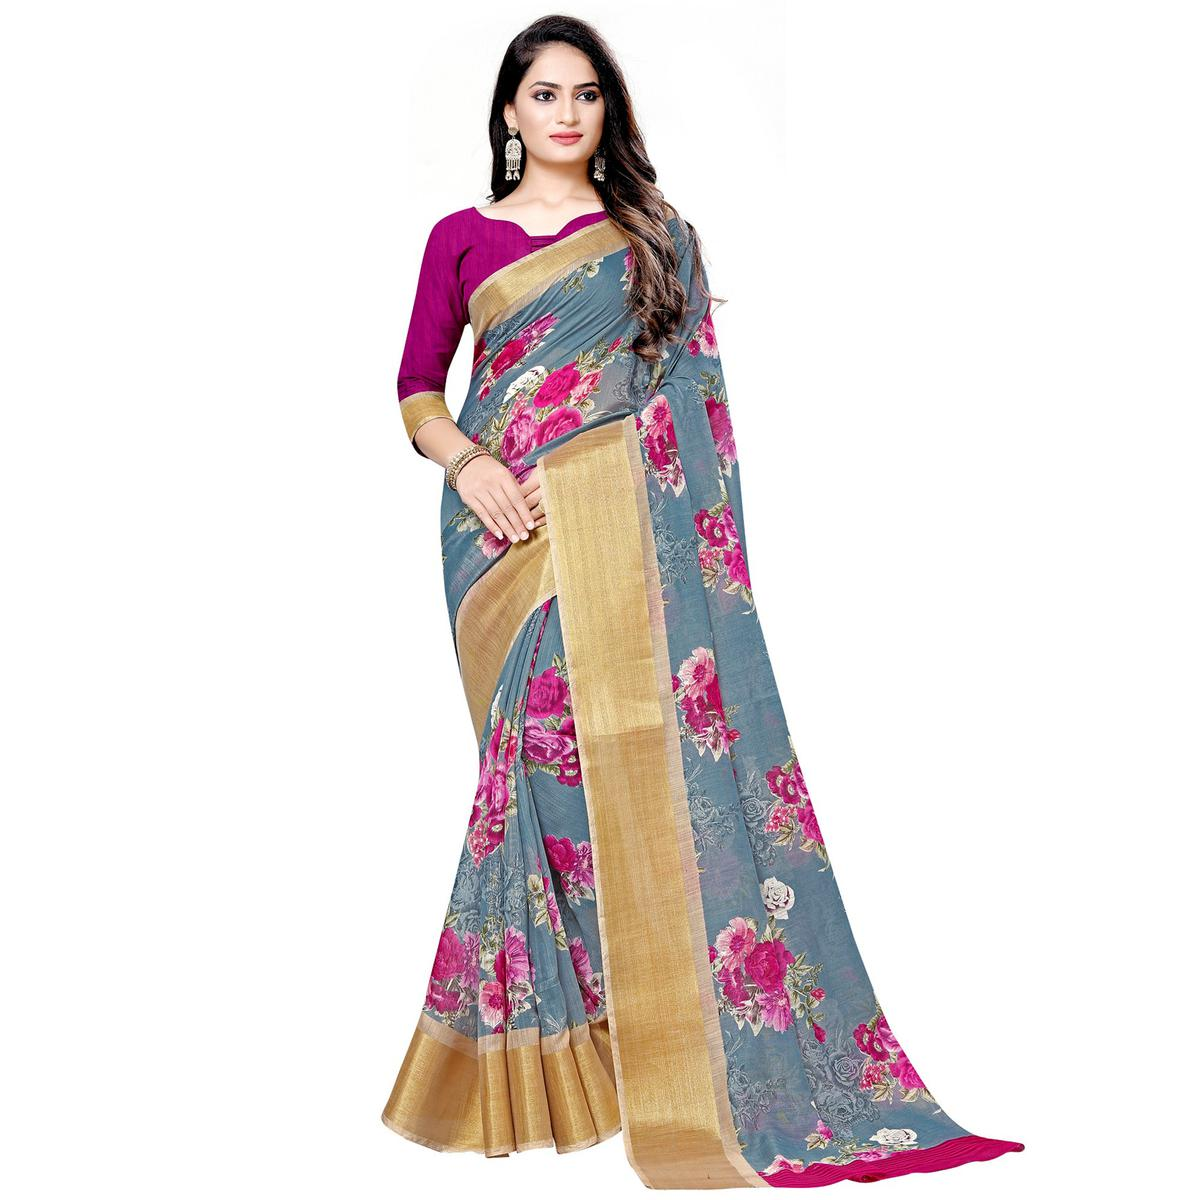 Captivating Grey Colored Casual Floral Printed Linen Saree